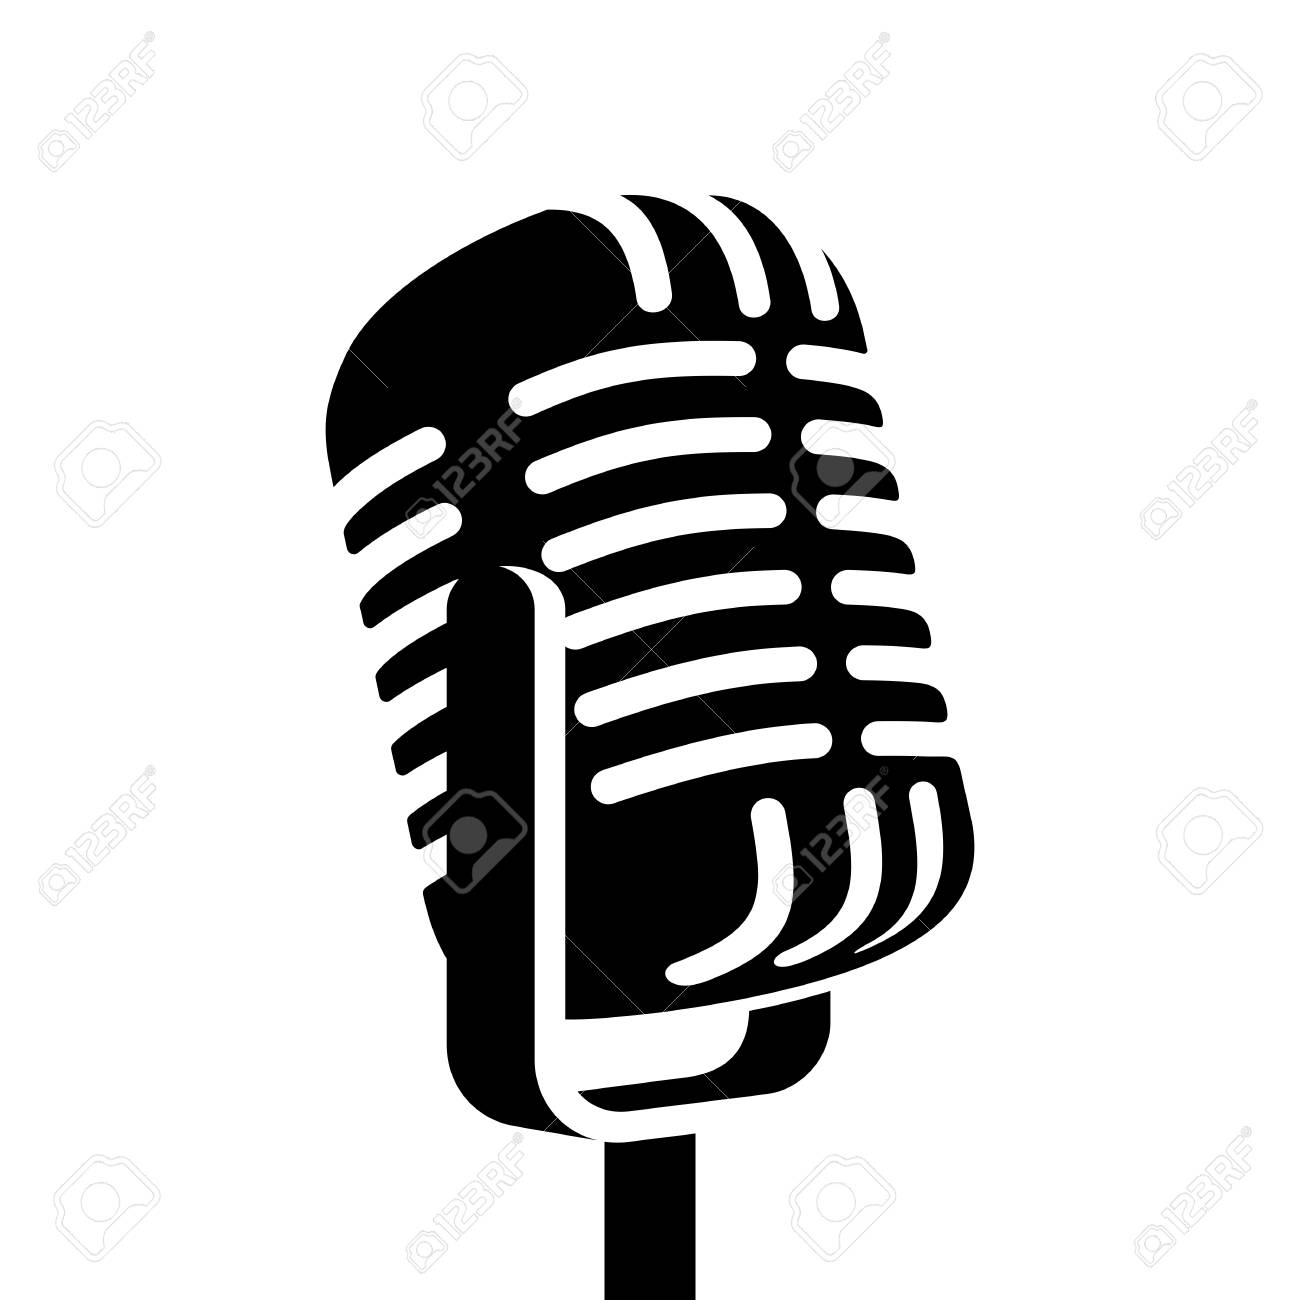 9b34840f8 Vintage Microphone Sign Vector Illustration Royalty Free Cliparts ...